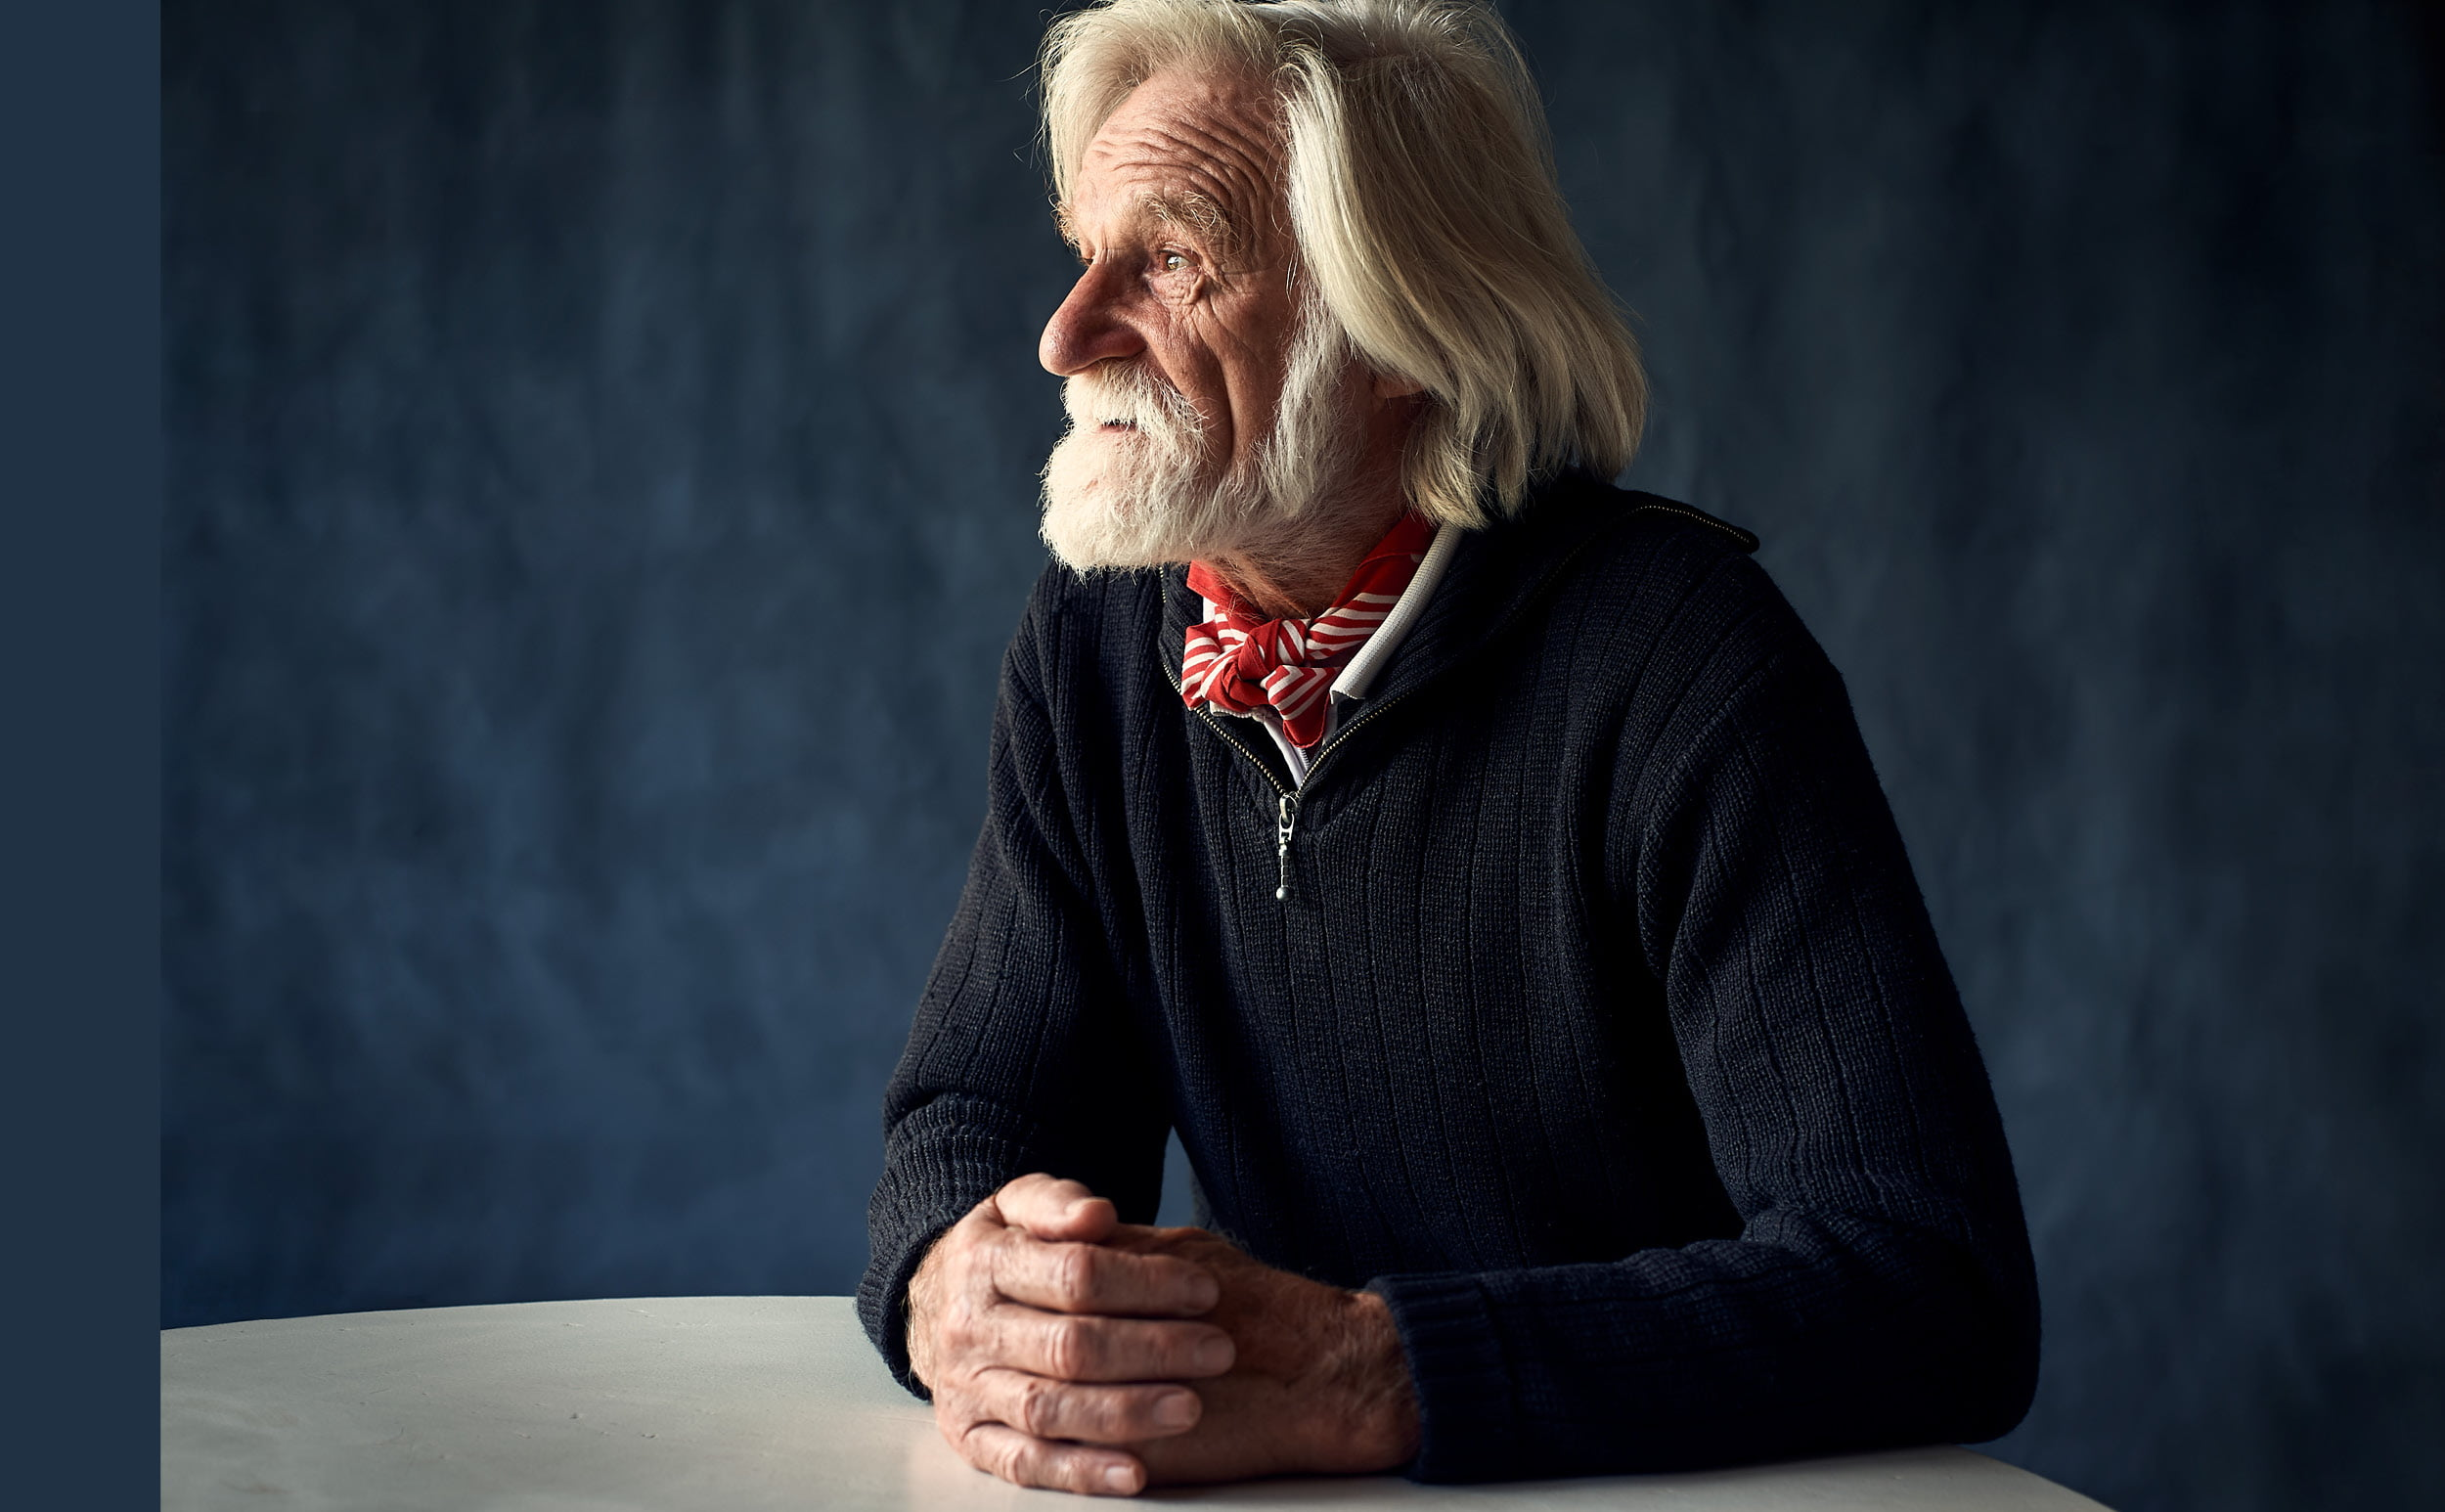 Portrait of Jean Bourgeois, Alpinist, Climber, Explorer, Writer and Musician